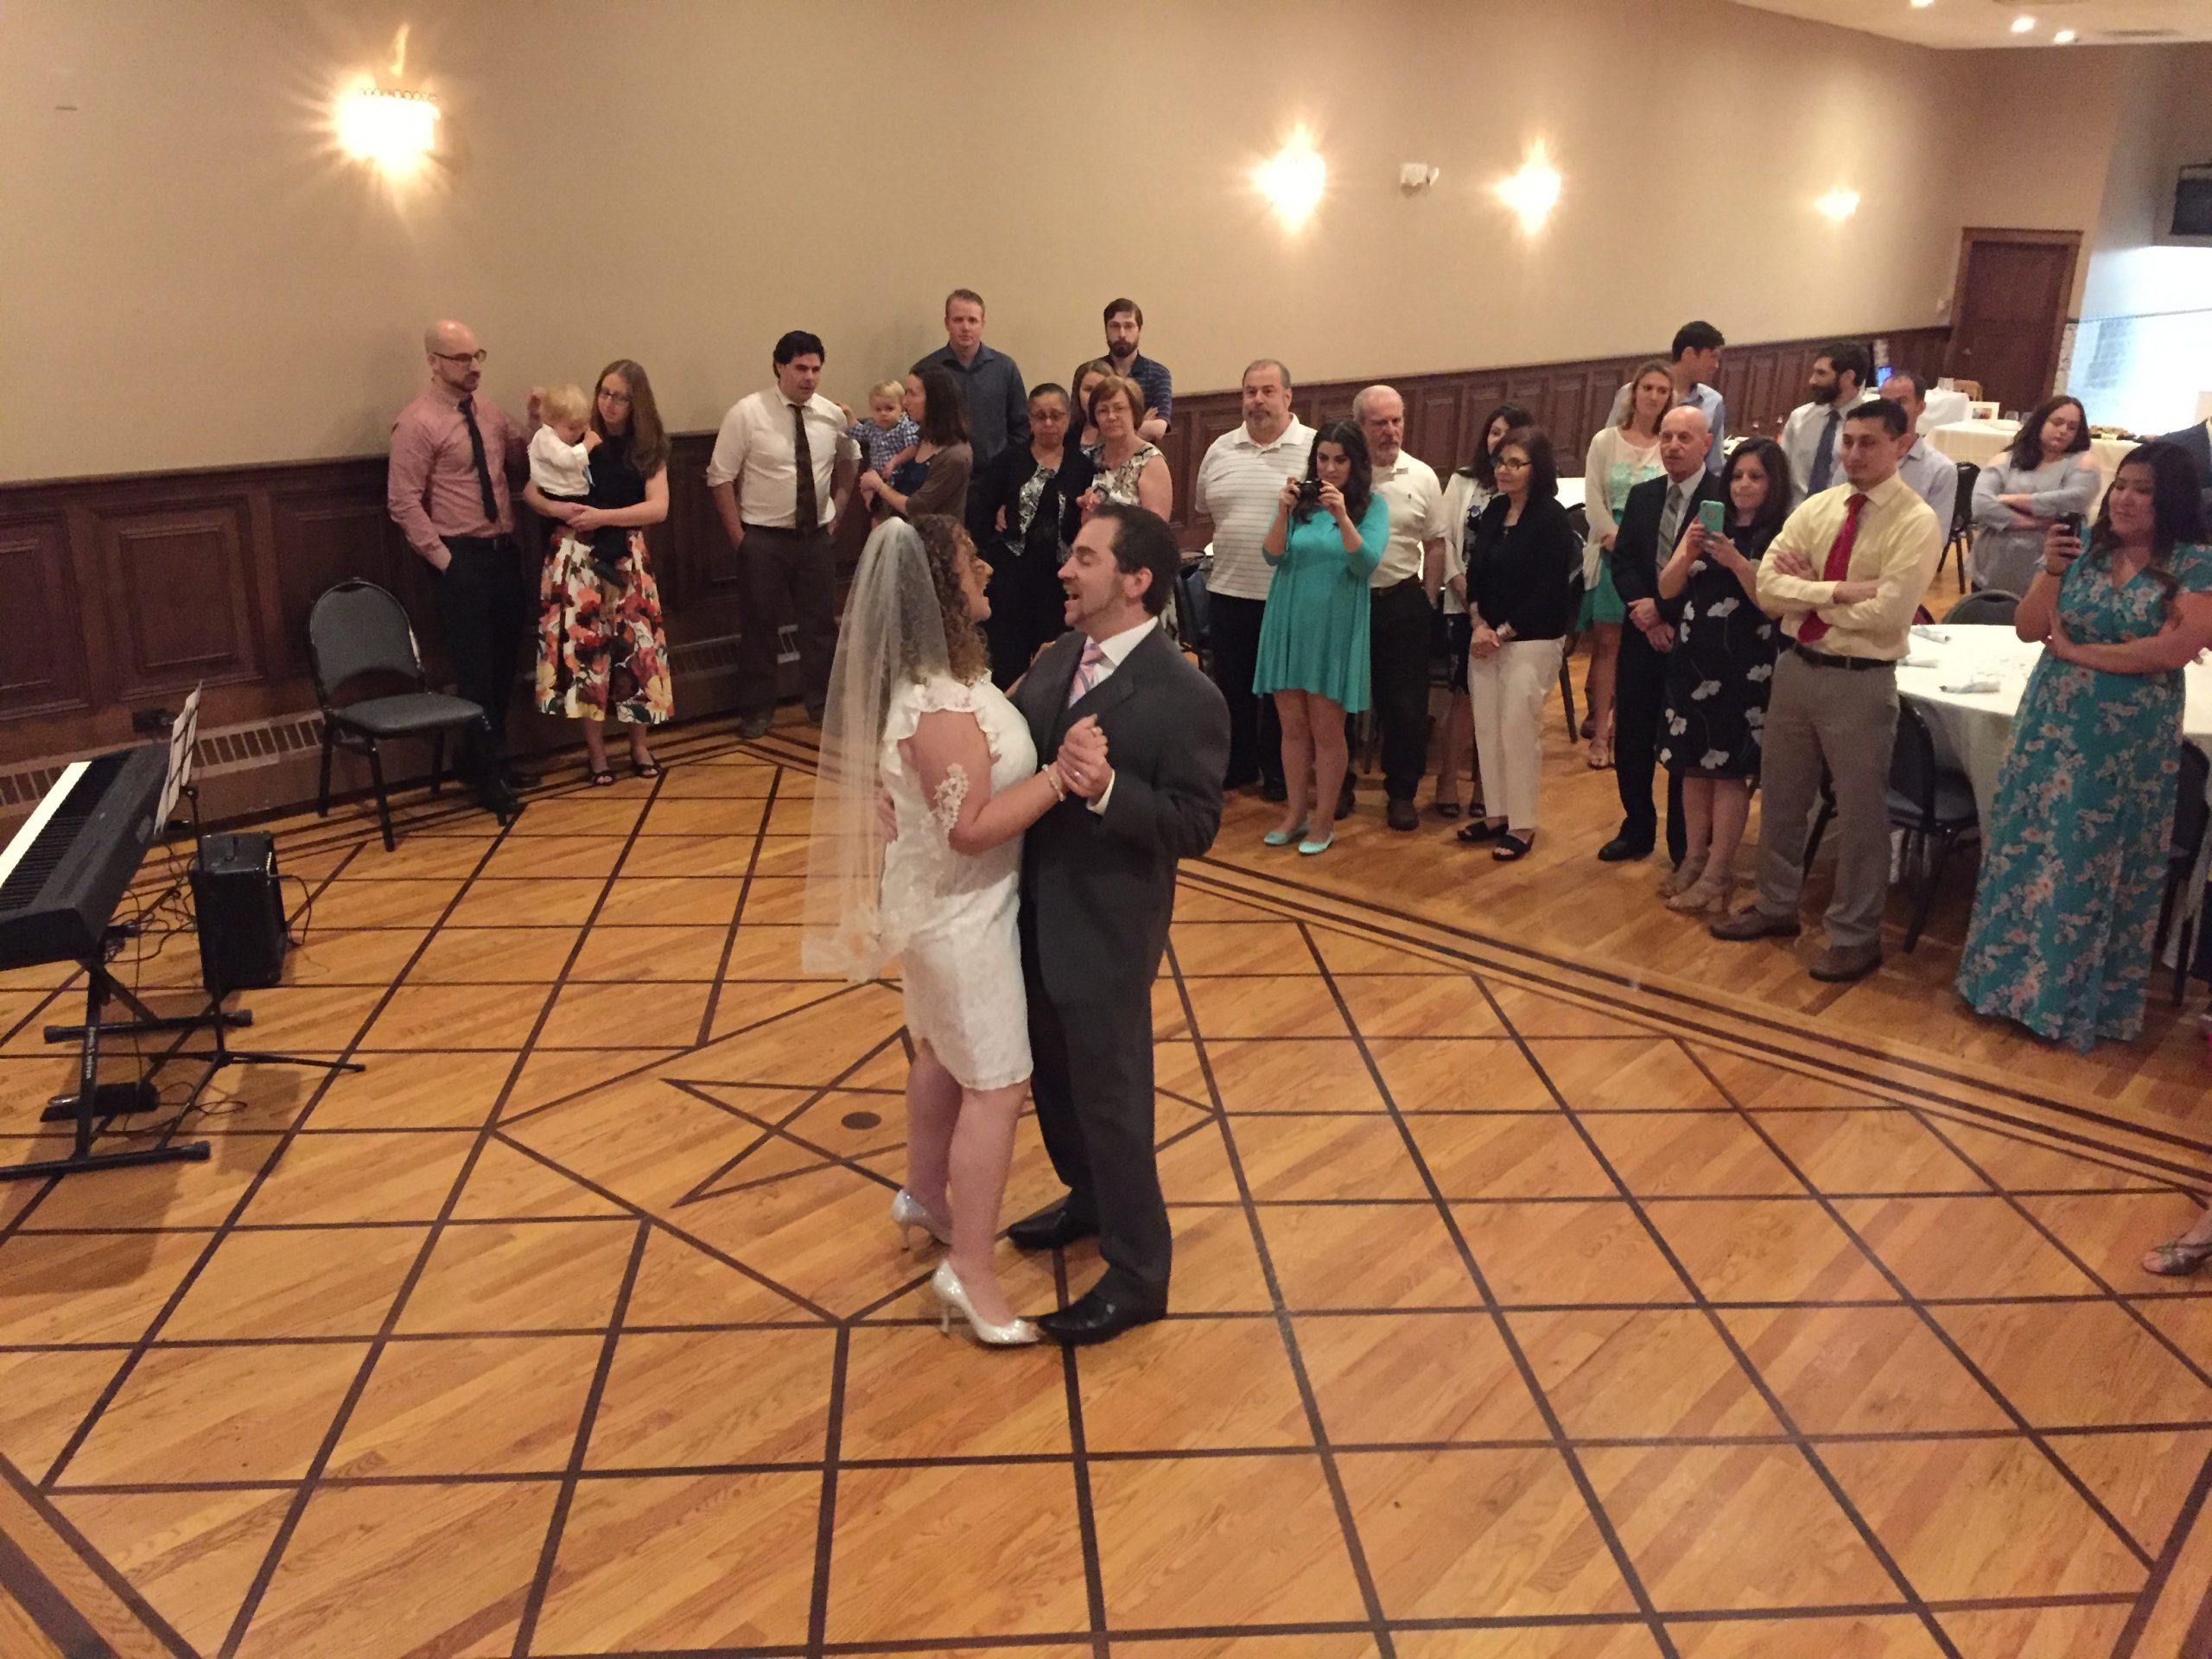 Adam and Linda's first dance, before Adam broke into song